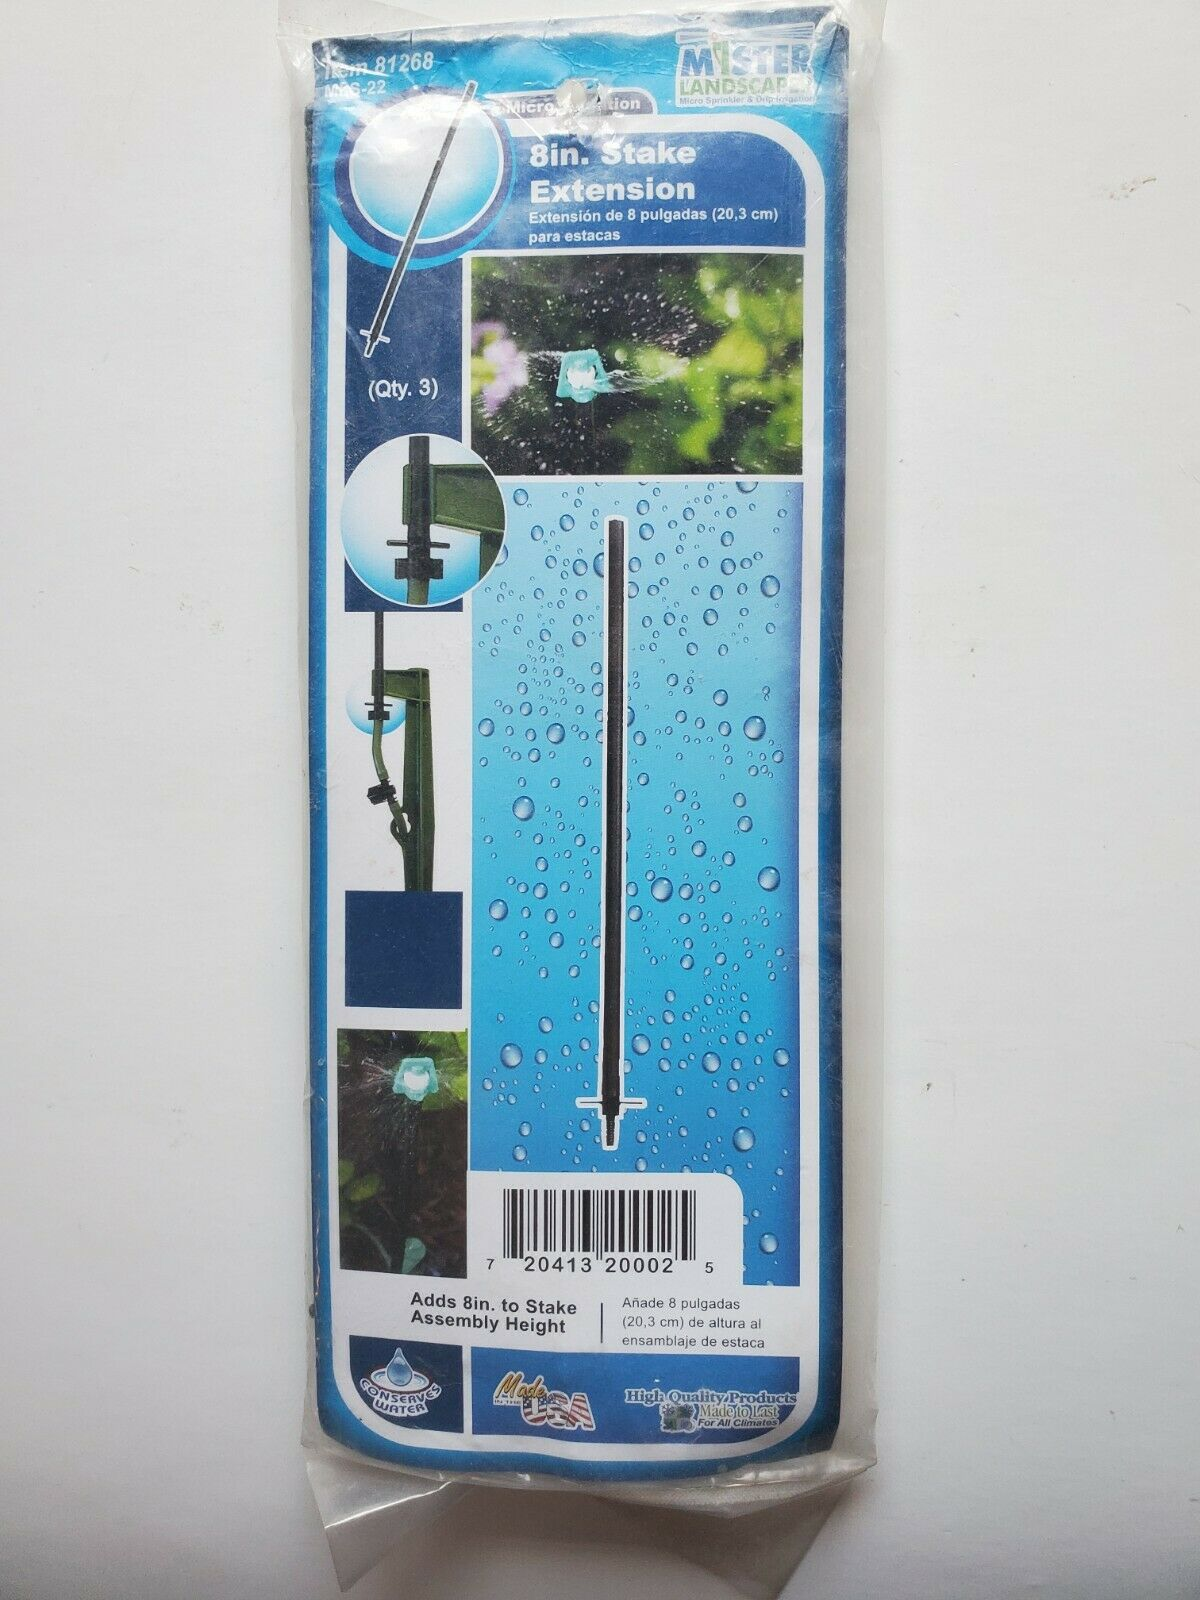 Mister Landscaper Lot of 2  3-Pack Drip Irrigation Extension Riser